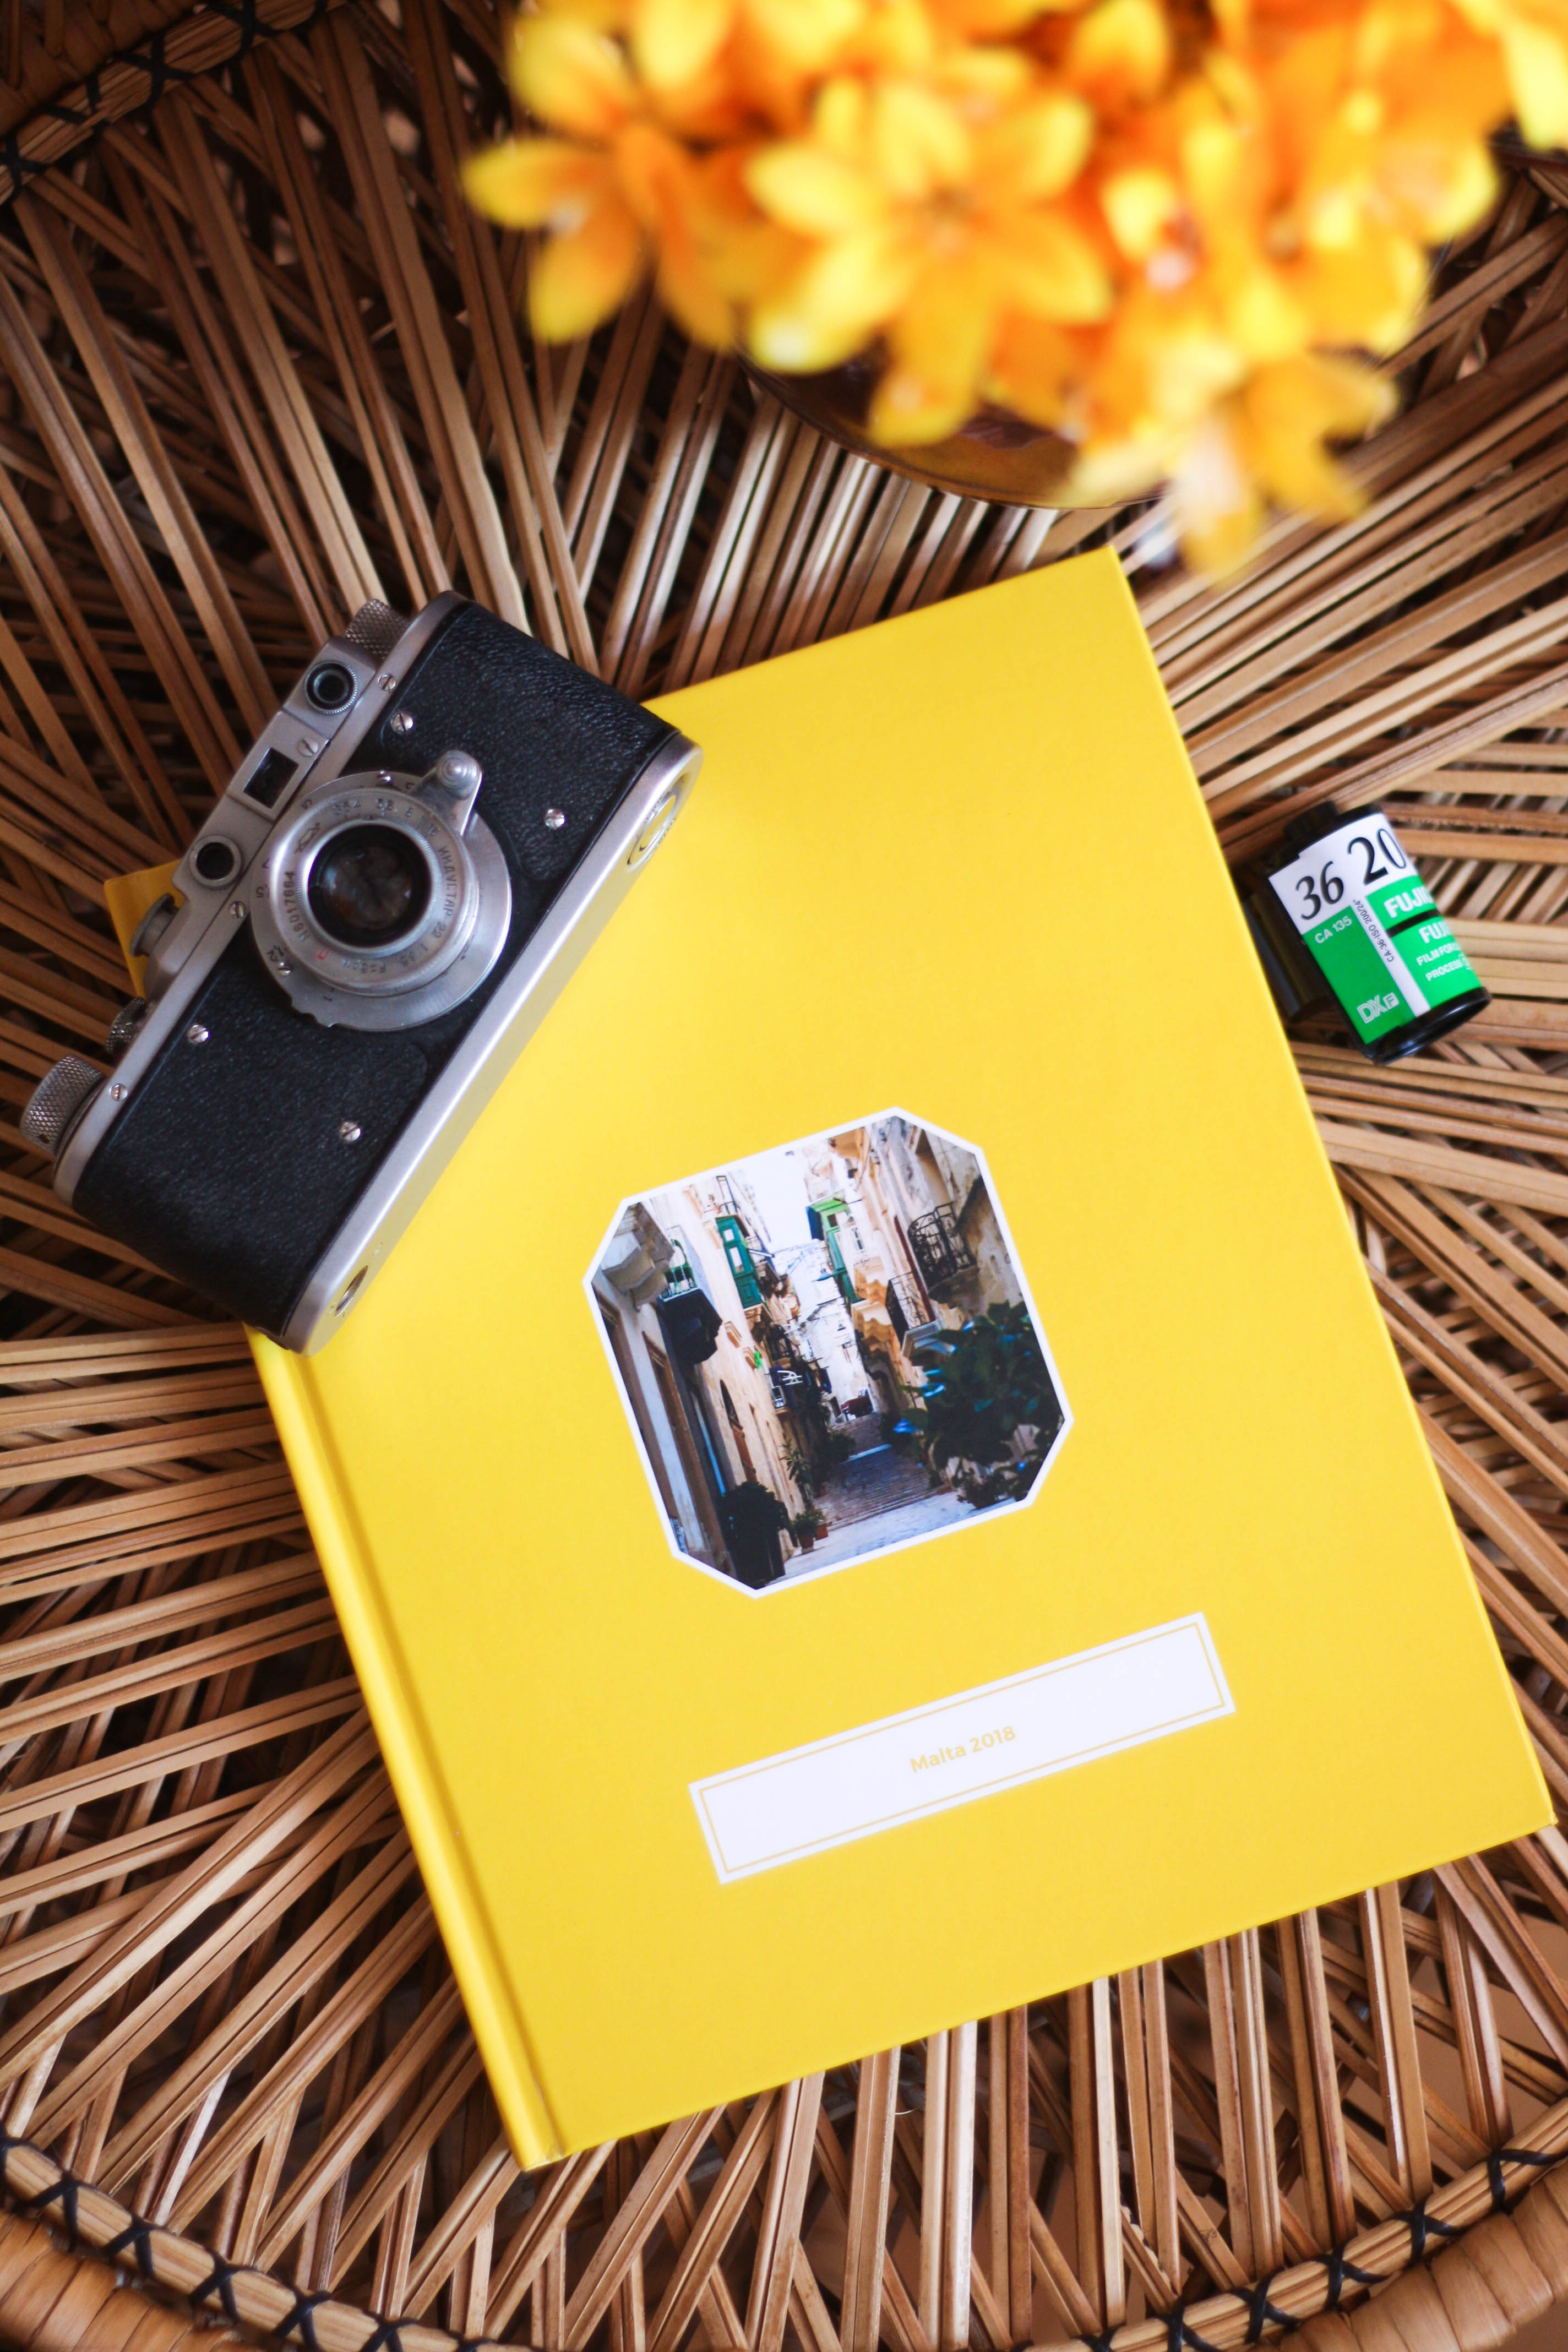 Cheerz photo book review